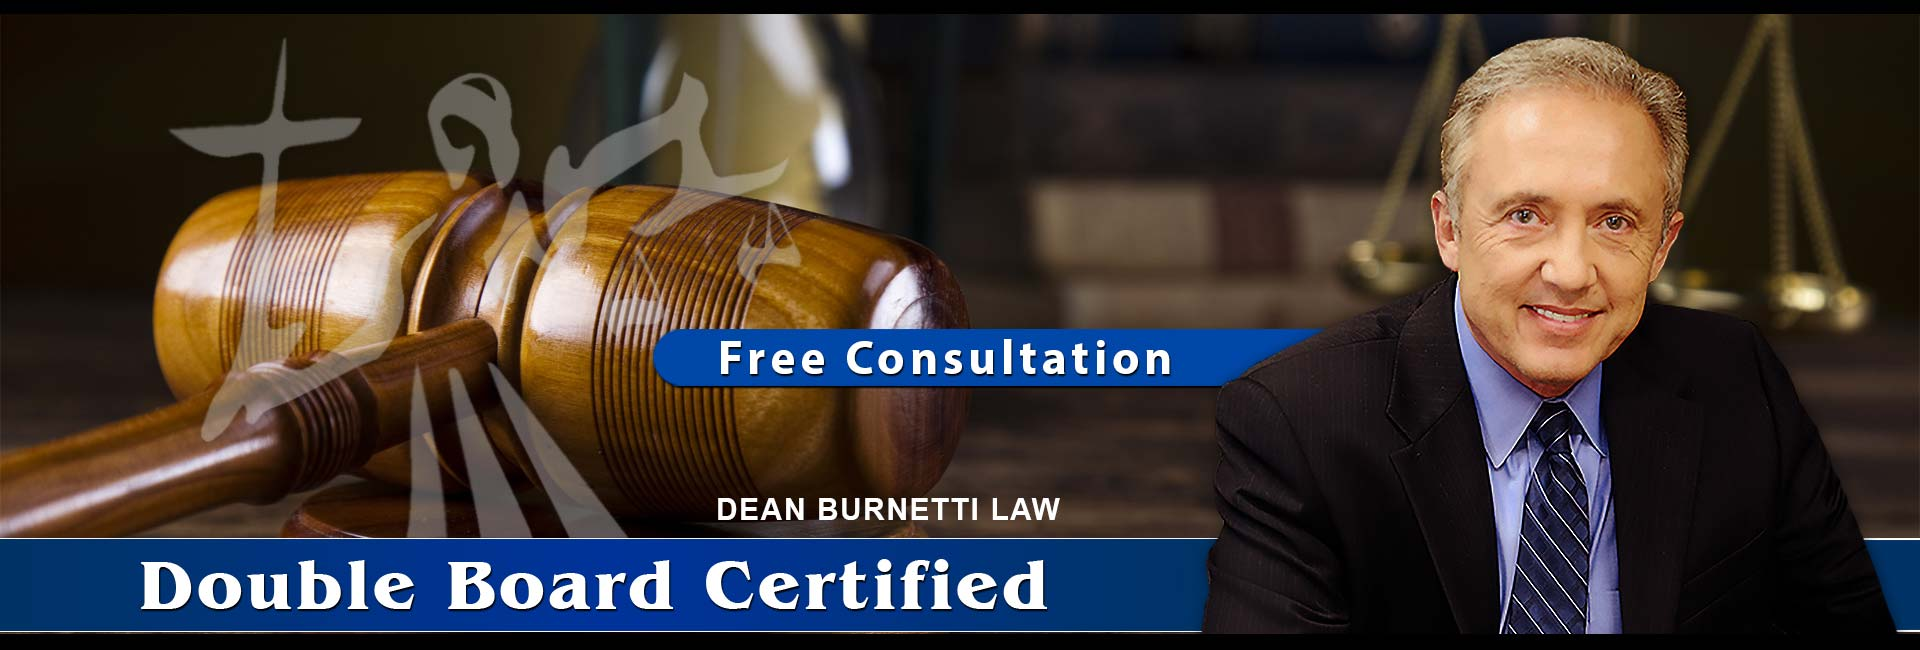 Dean Burnetti Law